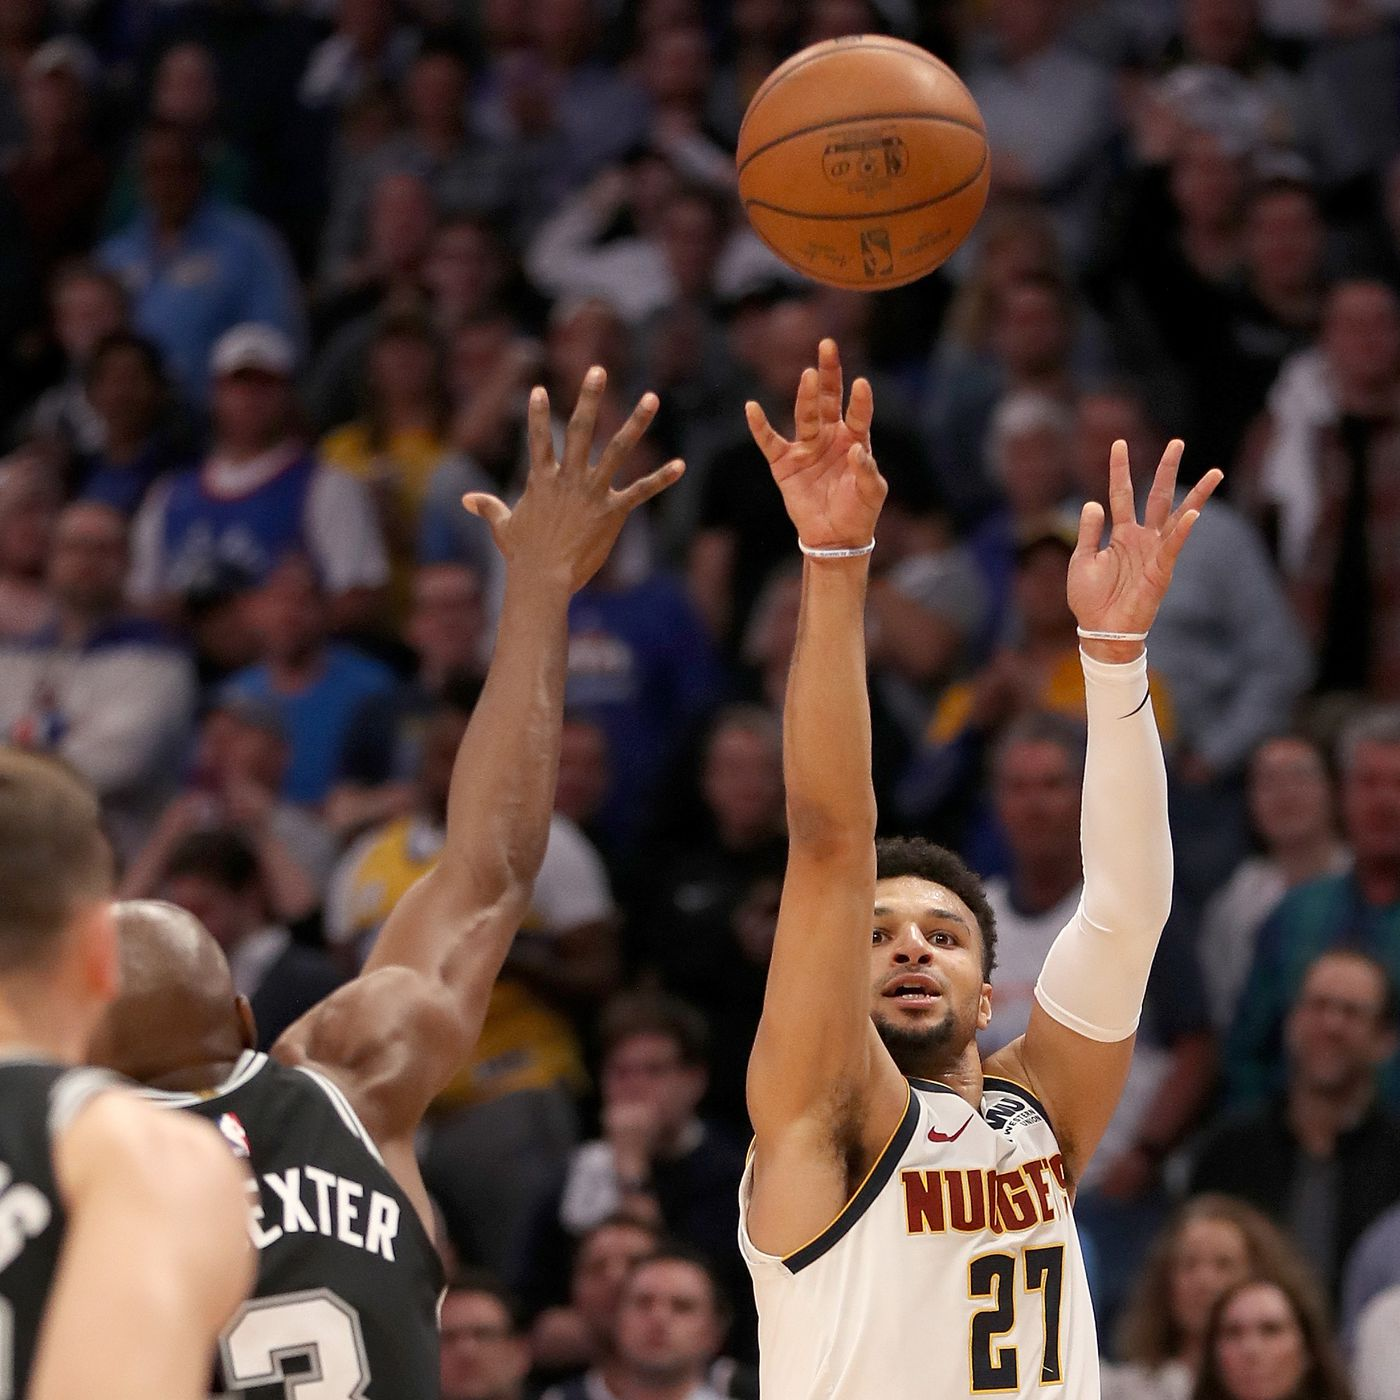 Flipboard: Jamal Murray's Fourth Quarter Explosion Saves